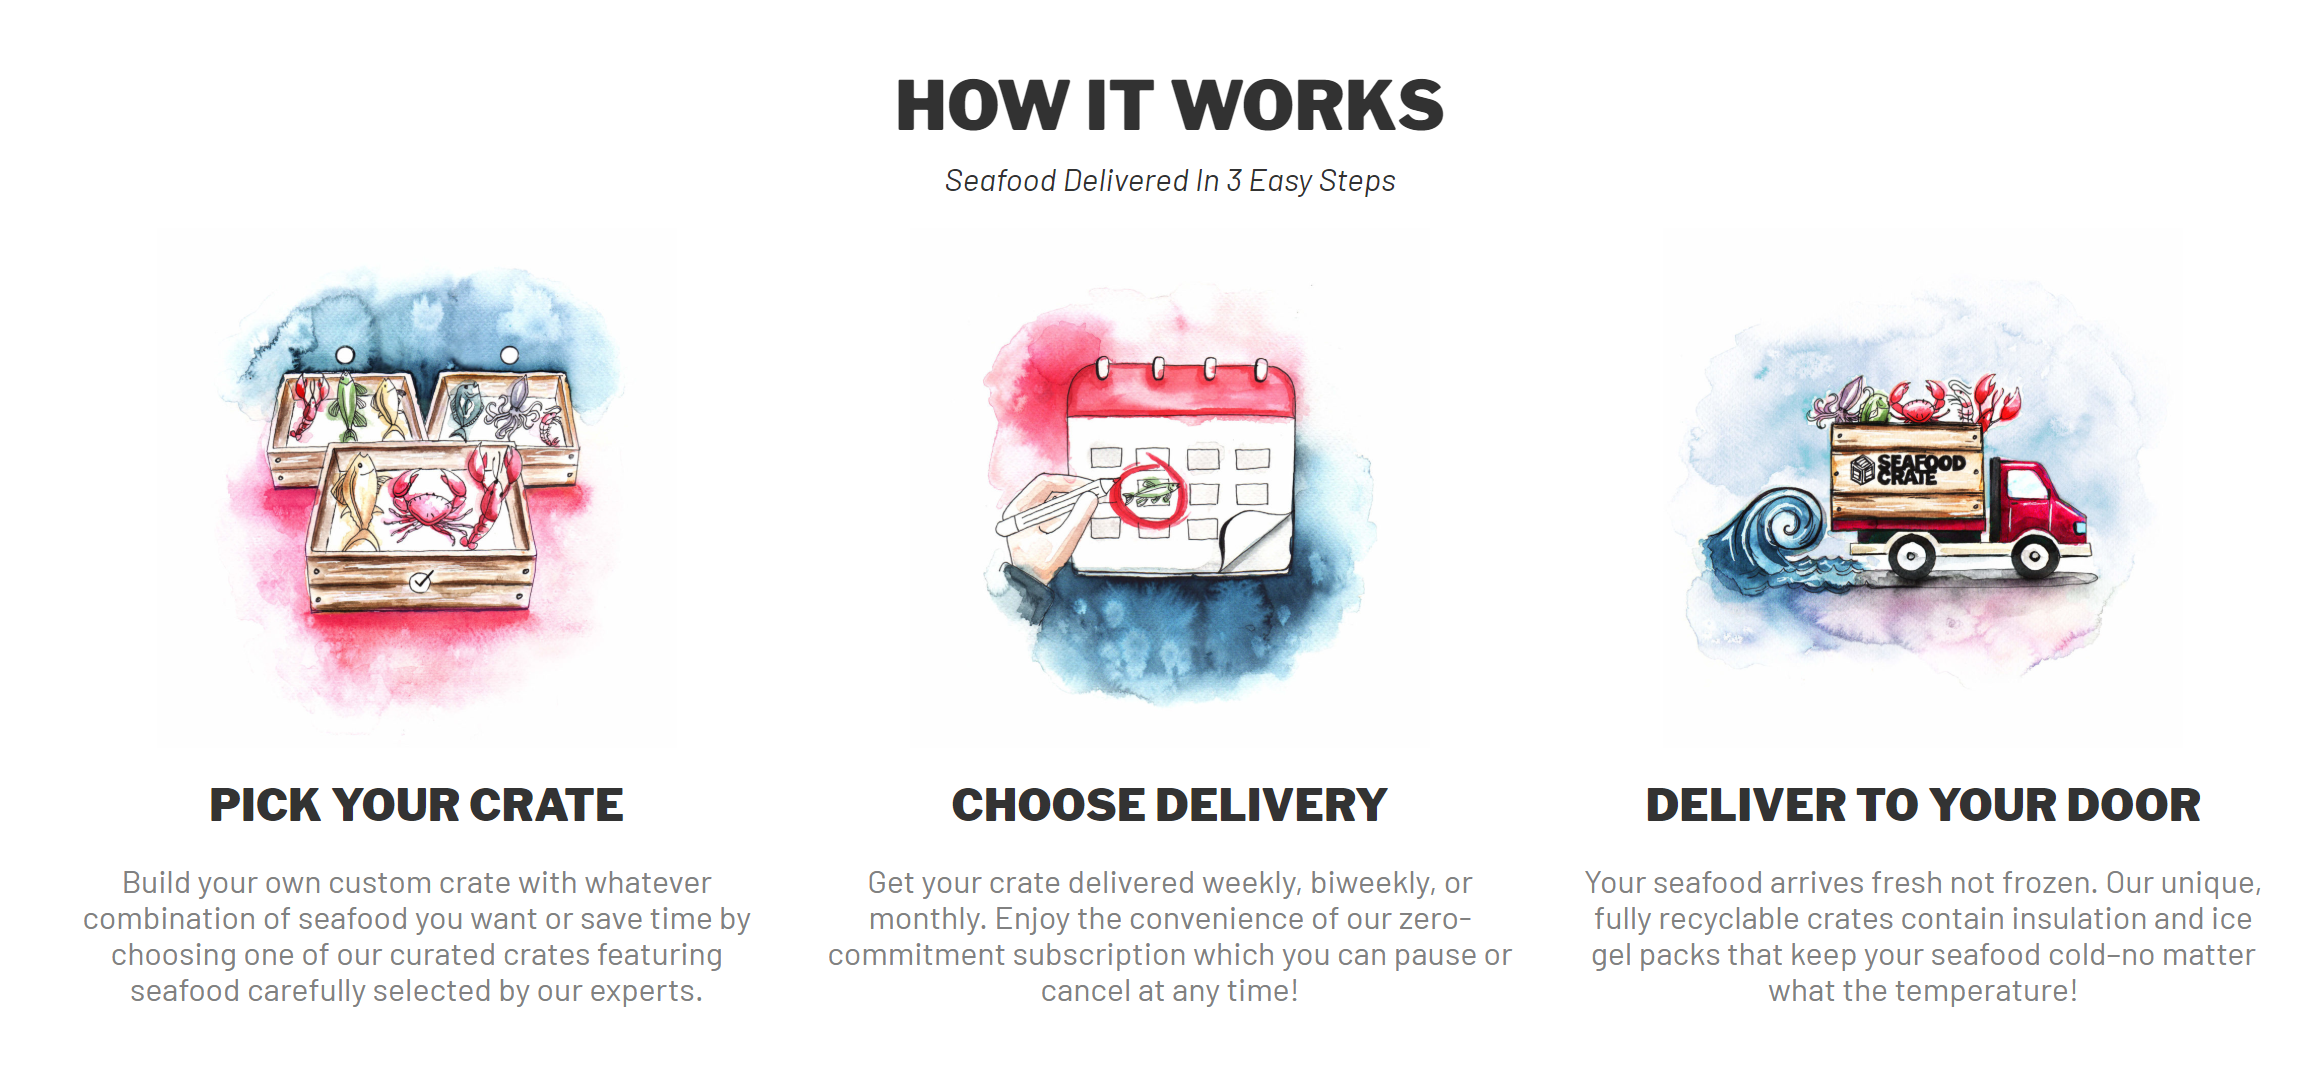 SEAFOOD CRATE LAUNCHES PREMIUM SEAFOOD HOME DELIVERY SUBSCRIPTION SERVICE